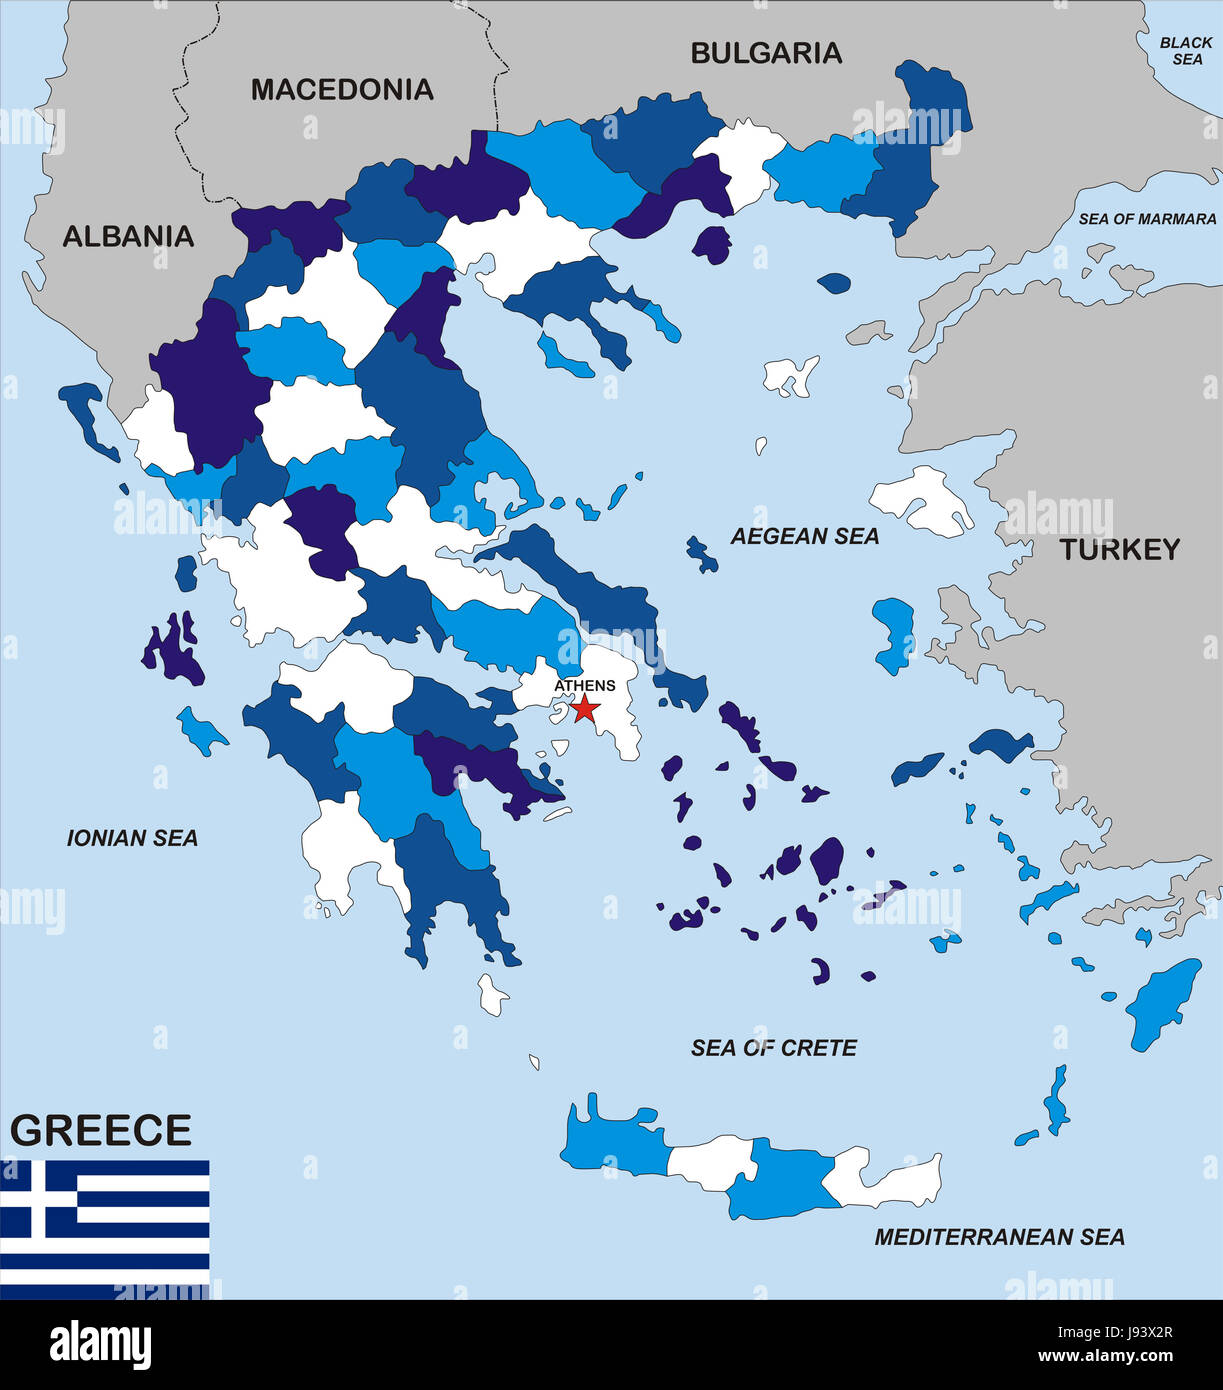 Greece map atlas map of the world travel political greece greece map atlas map of the world travel political greece flag country gumiabroncs Images